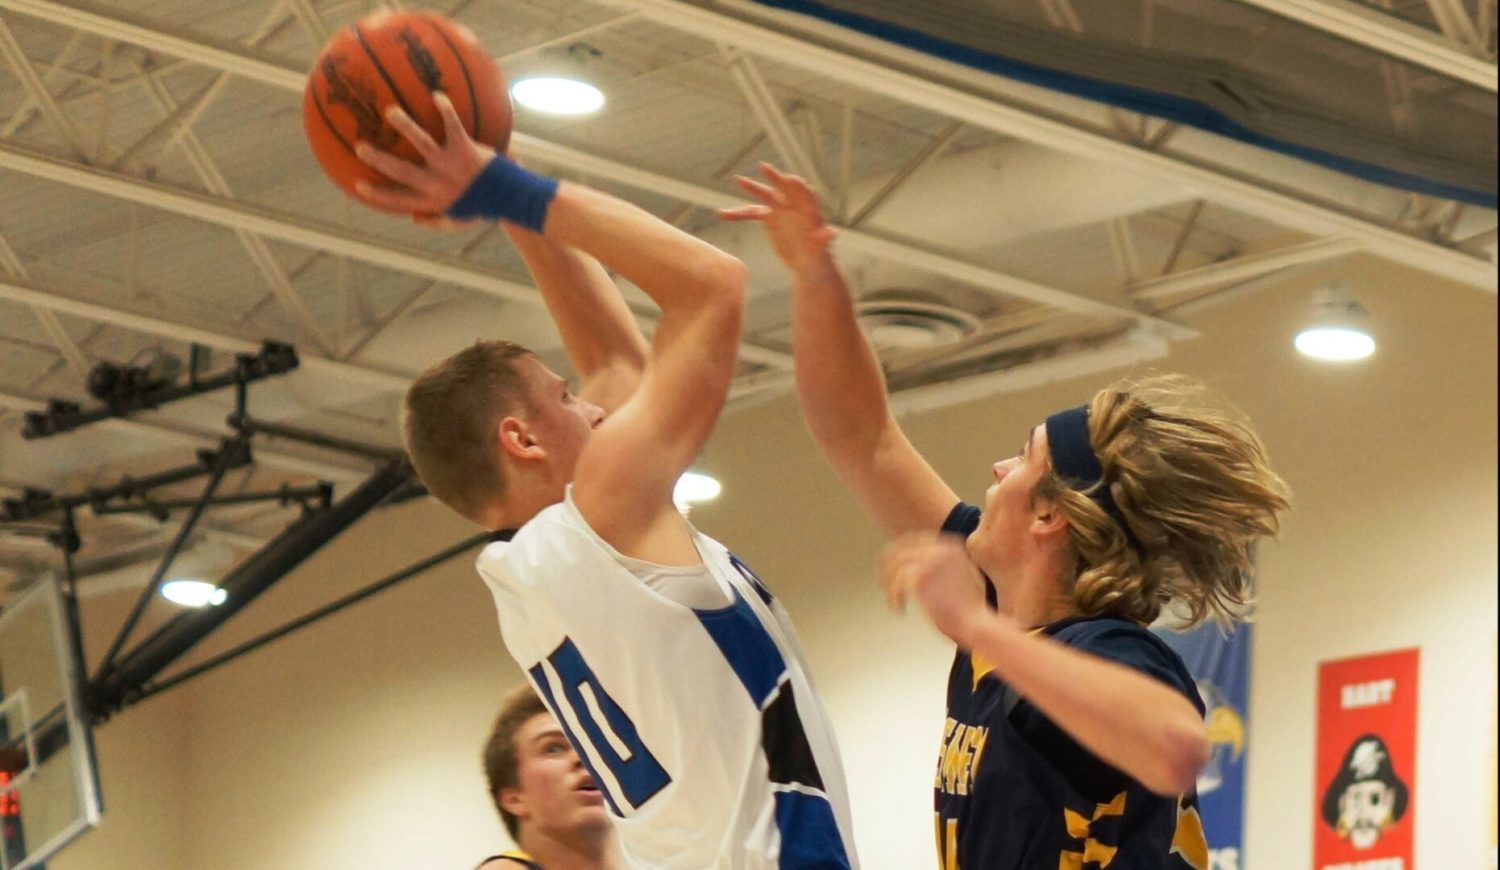 Oakridge boys hoops squad tightens up on 'D', heats up from 3 in win over North Muskegon